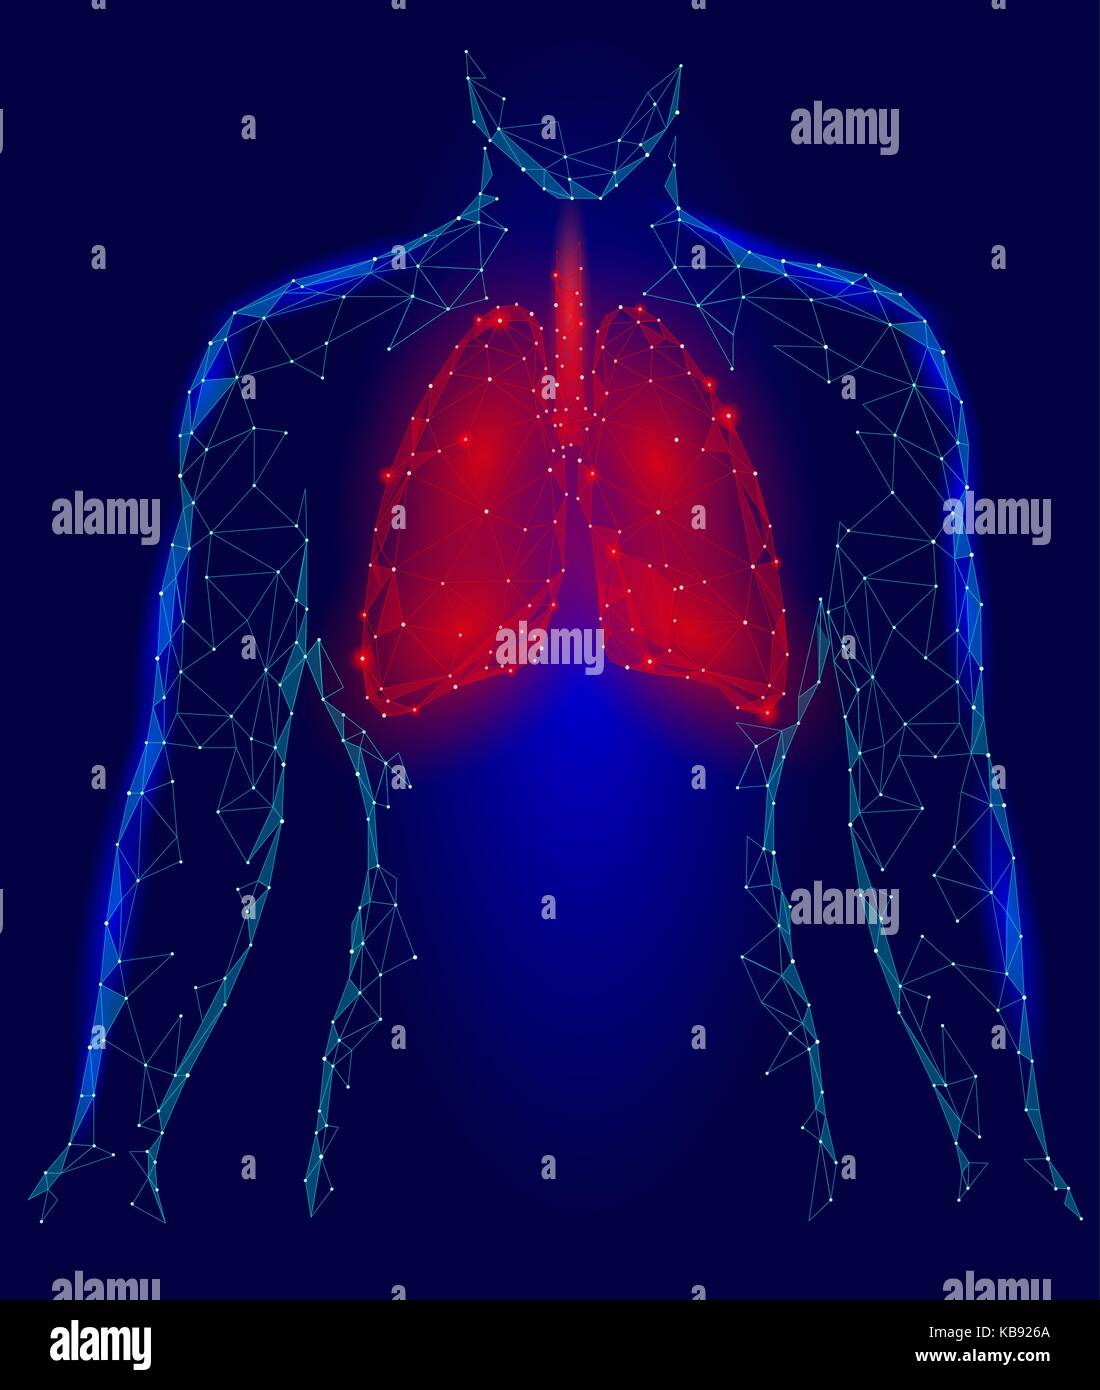 Human Lungs Pulmonary infection Internal Organ. Respiratory system Inside Body Silhouette. Low Poly 3d Connected - Stock Image